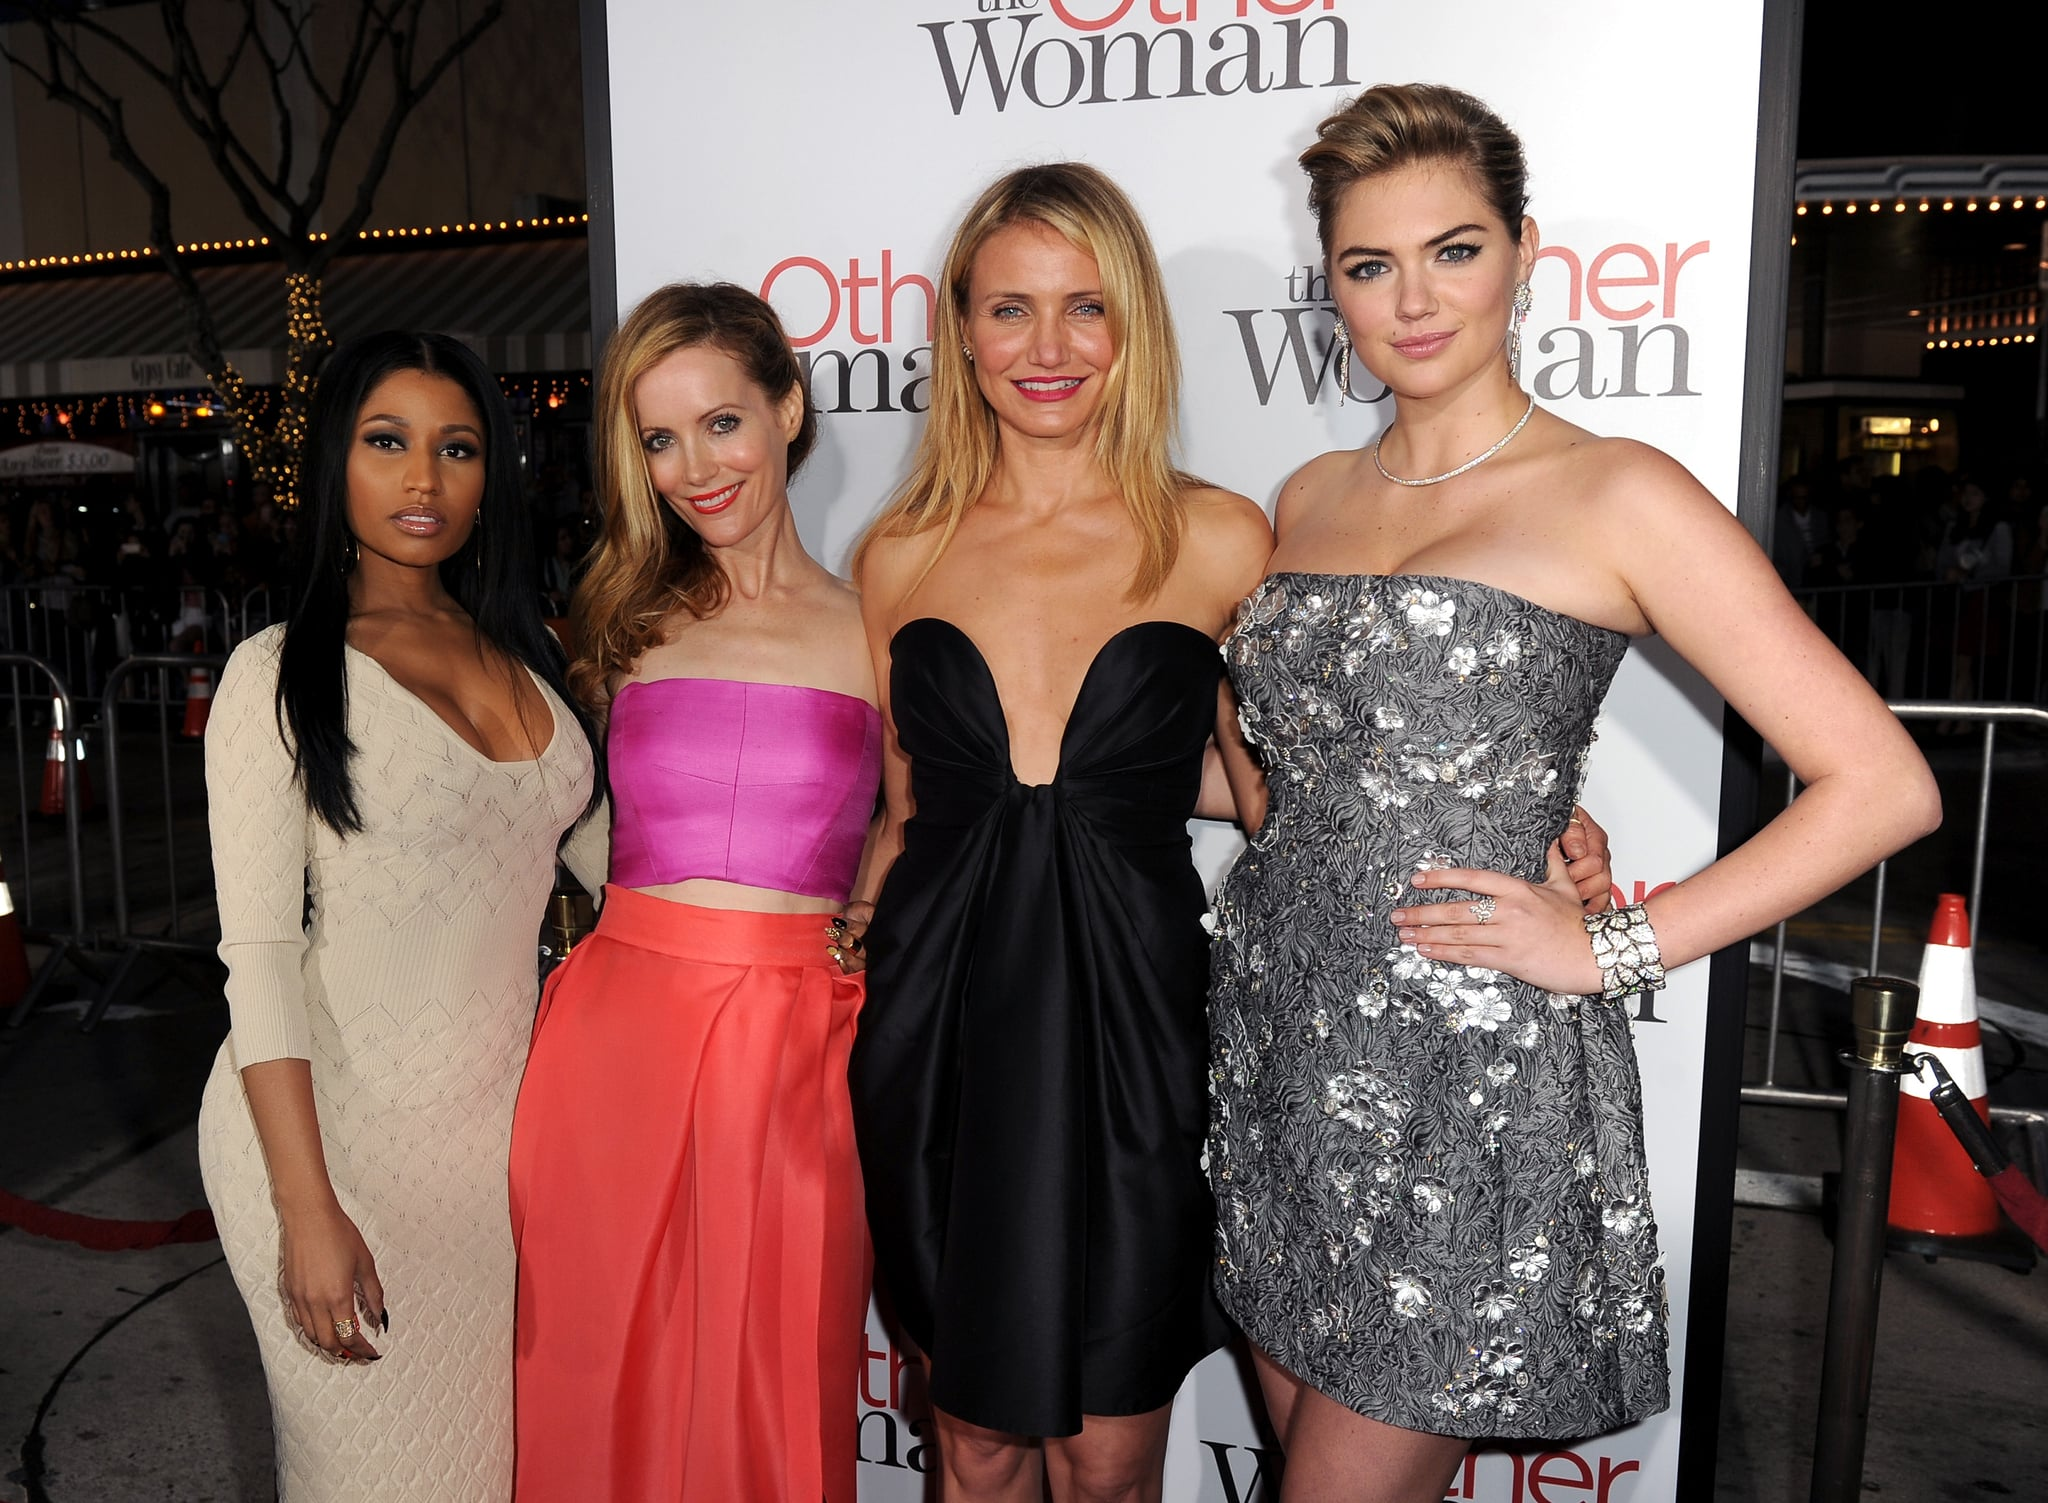 Nicki Minaj, Leslie Mann, Cameron Diaz, and Kate Upton brought The Other Woman to LA on Monday.